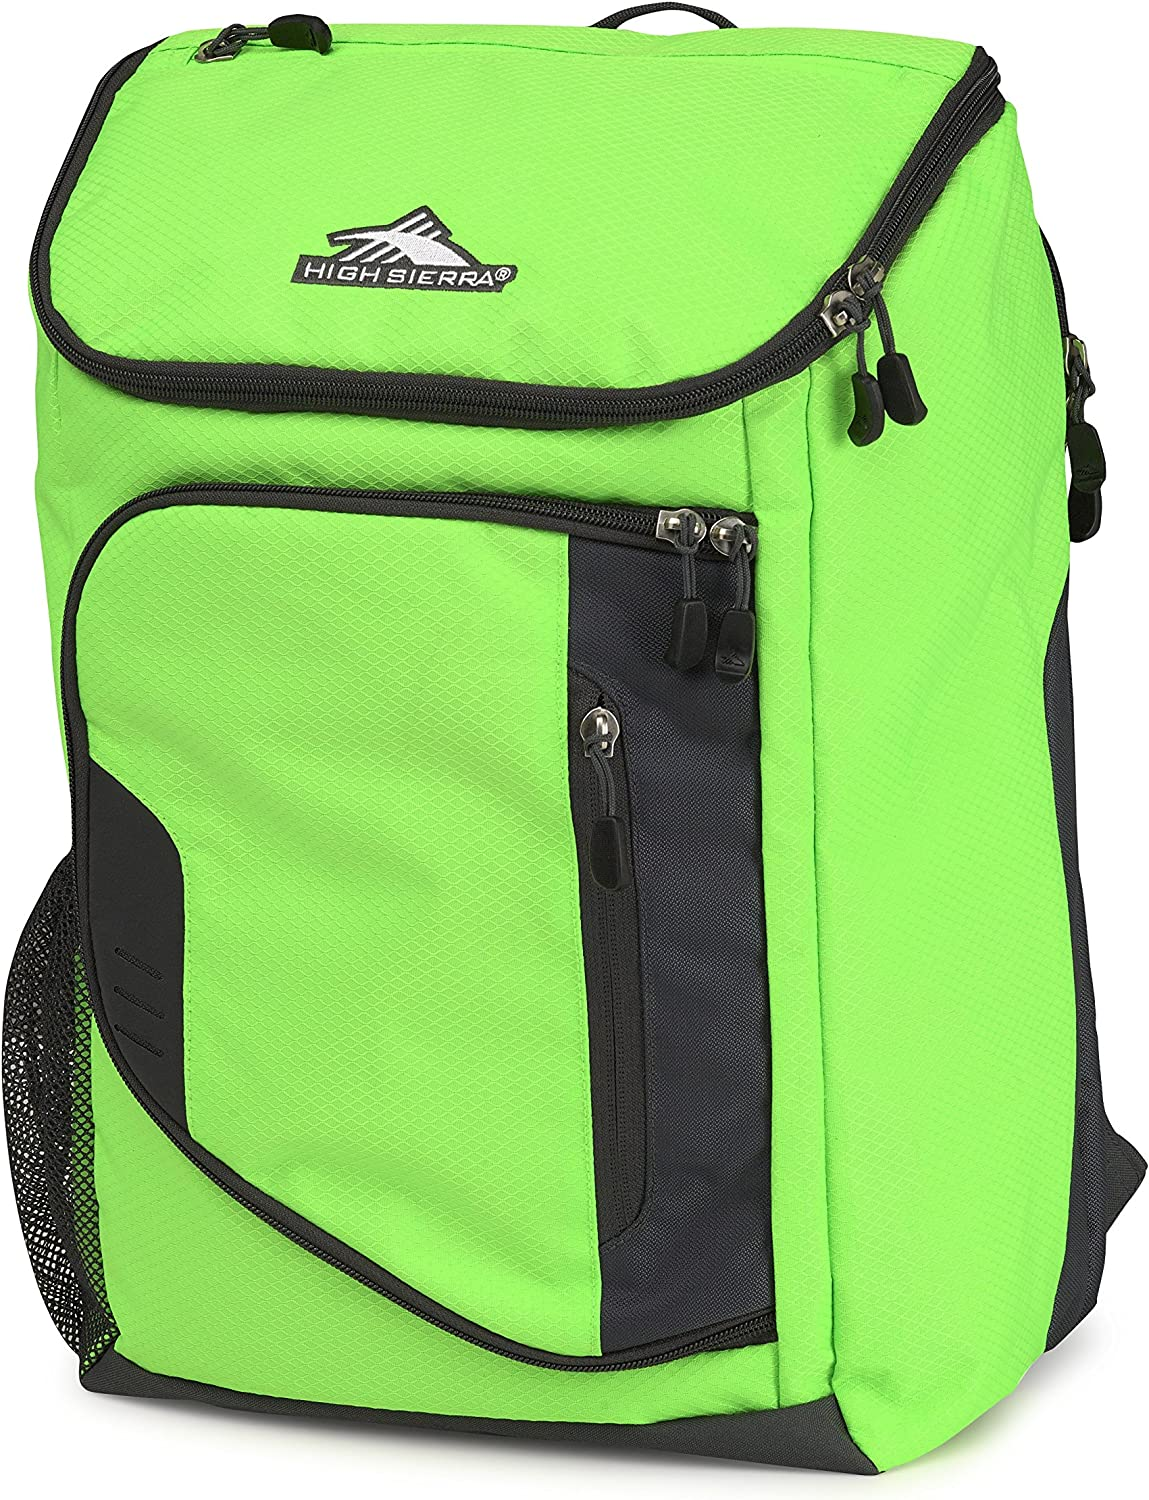 High Sierra Poblano Backpack, Lime Mercury, One Size